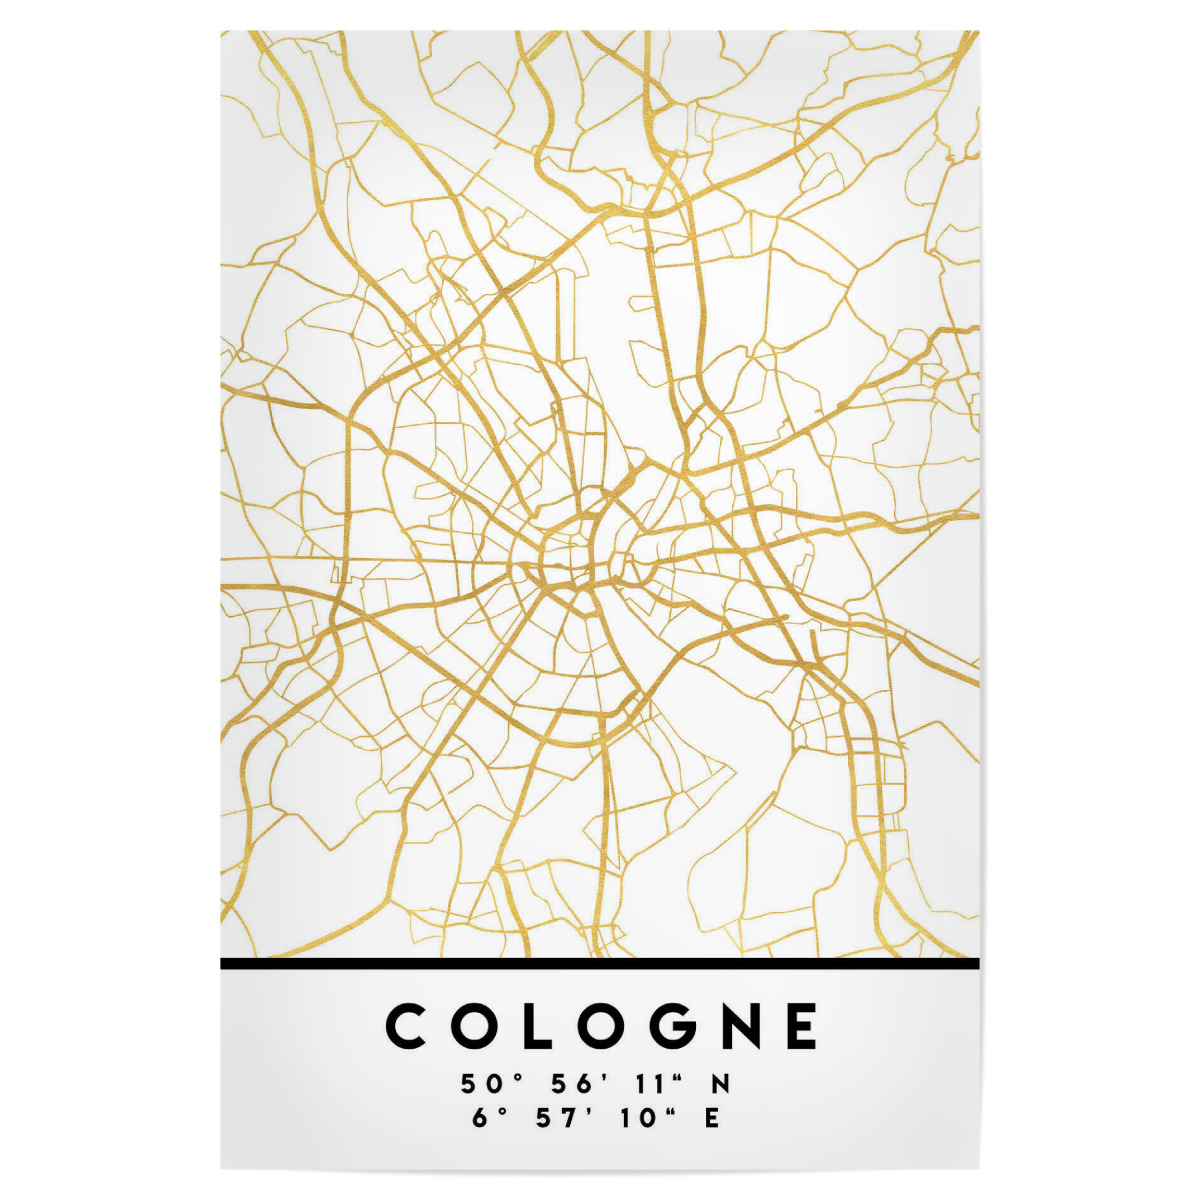 COLOGNE GERMANY STREET MAP ART als Poster bei artboxONE kaufen